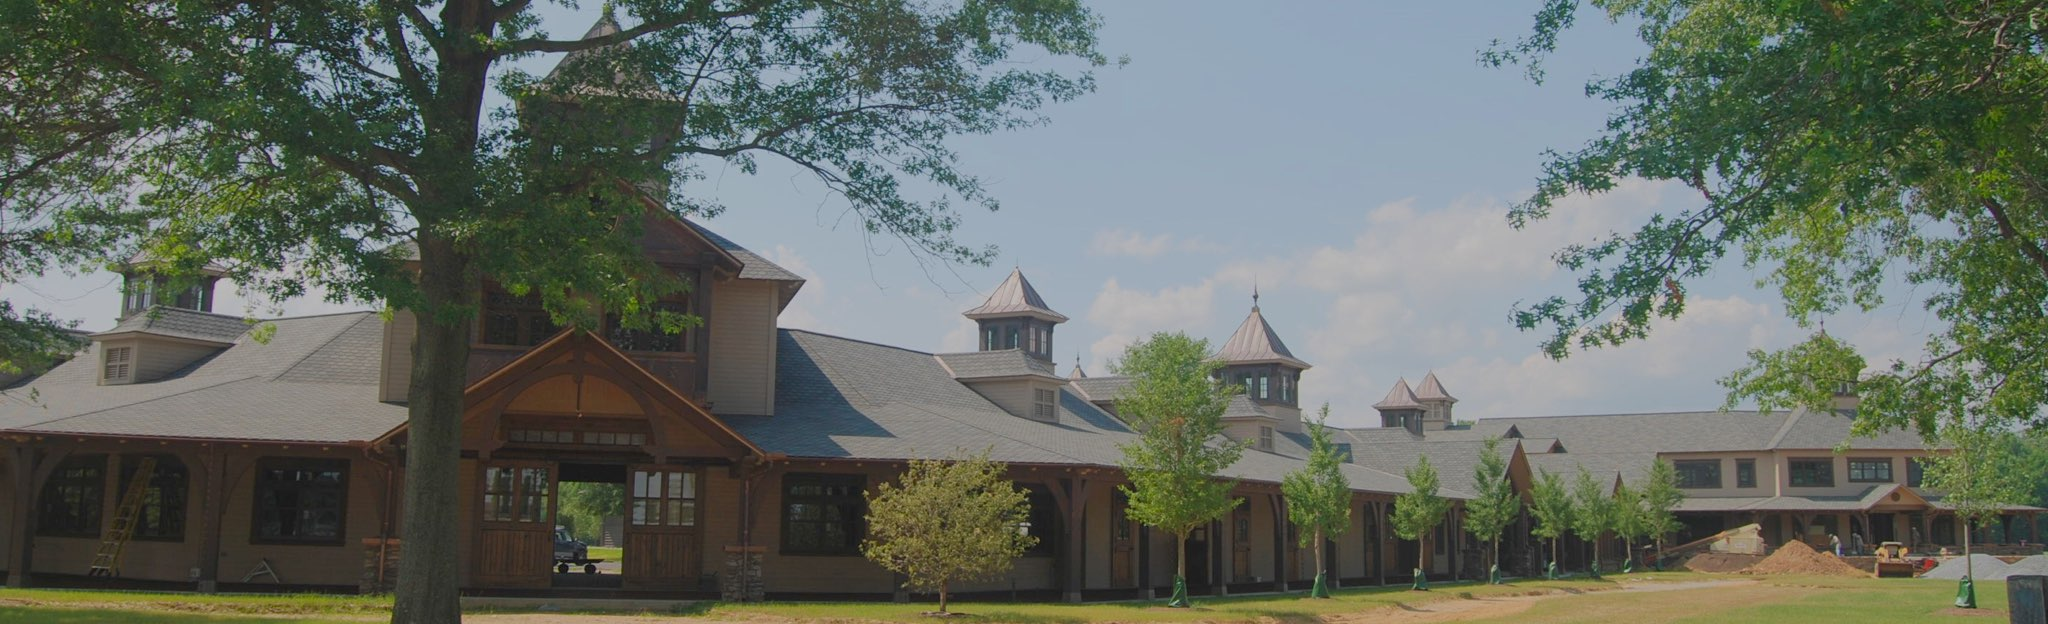 Exterior of beautiful, sprawling equestrian building by Engel Architects